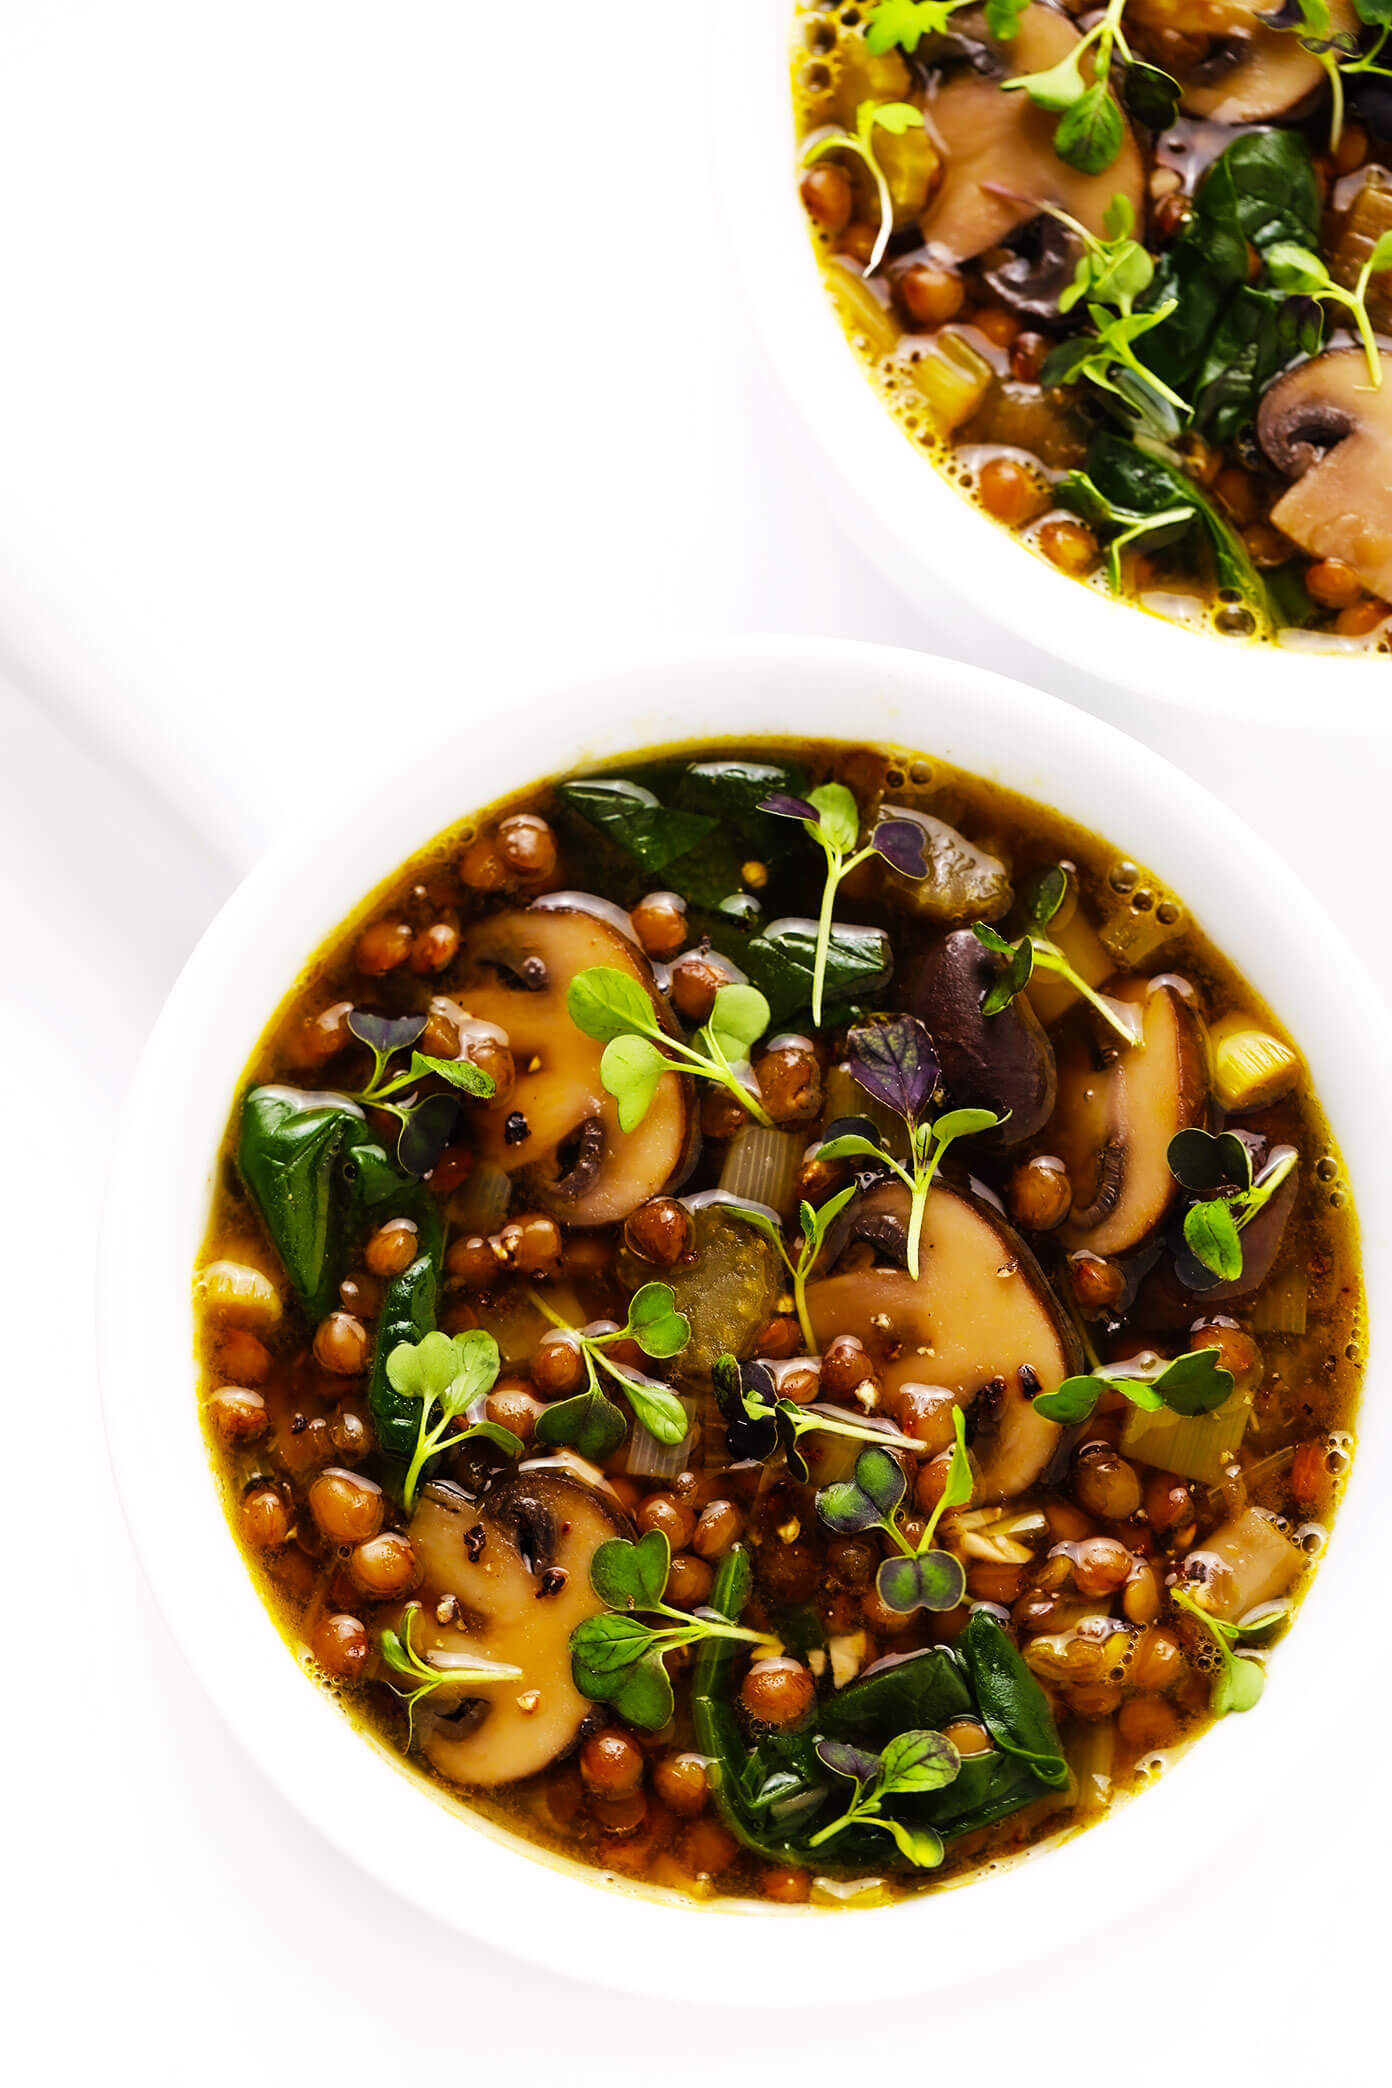 French Lentil and Mushroom Soup Recipe in Bowls